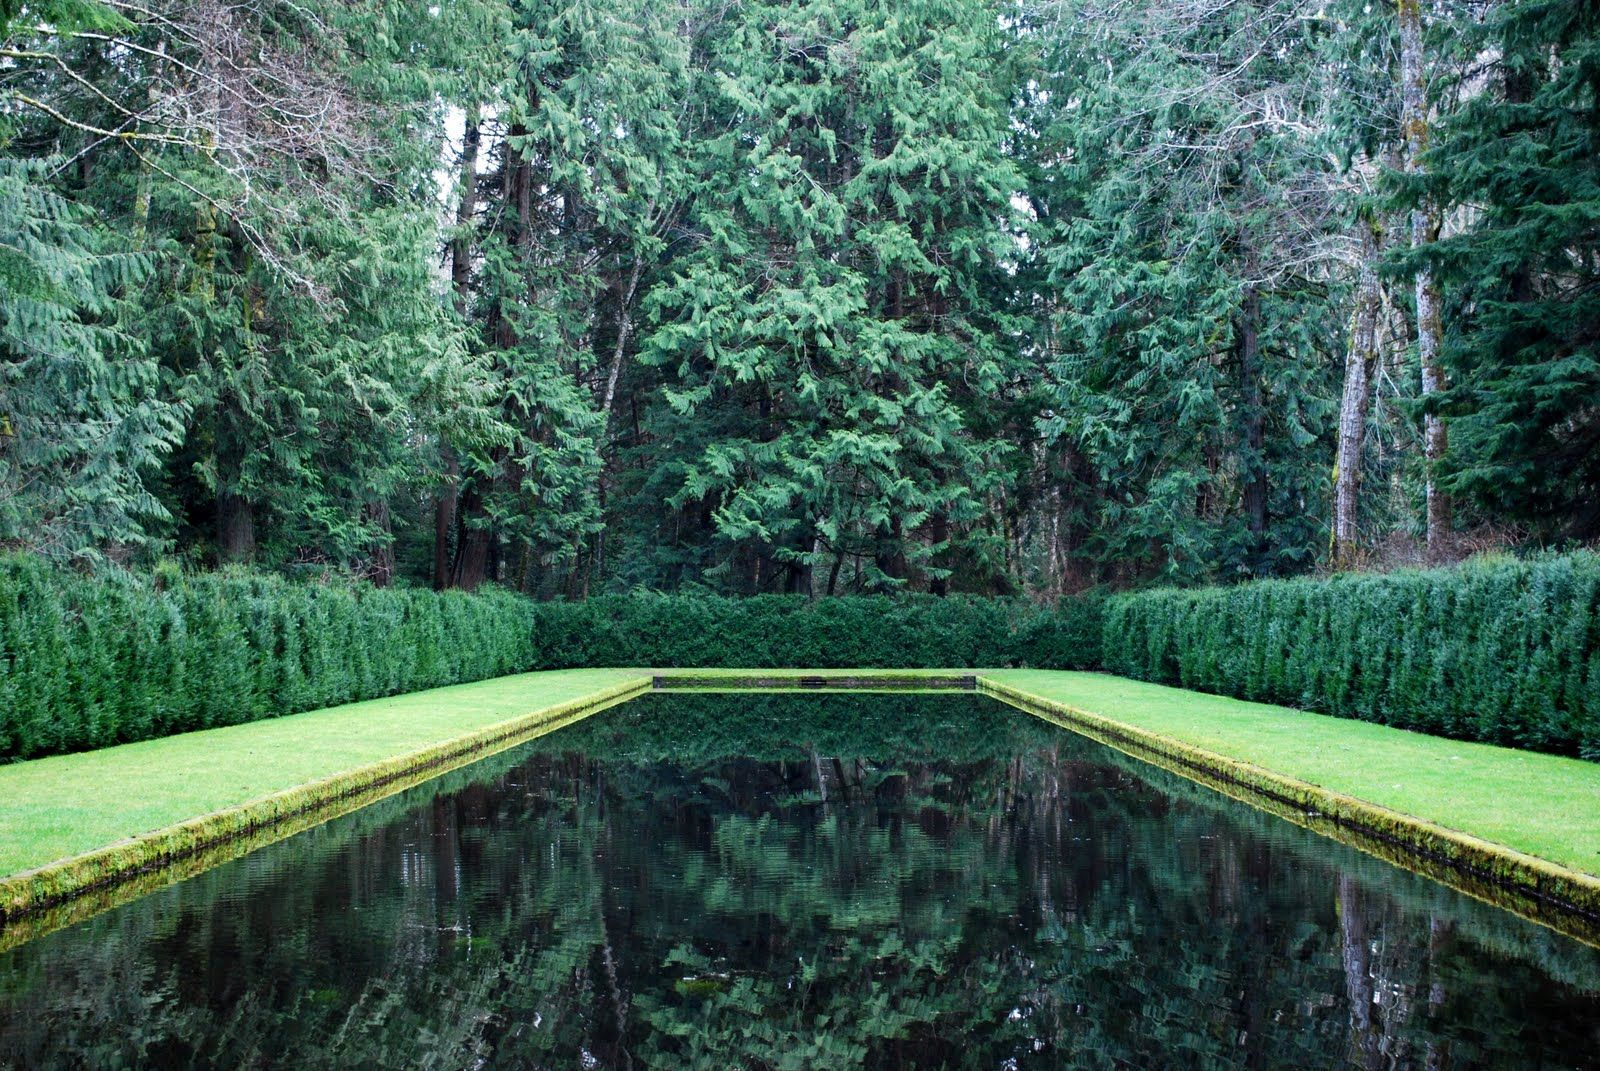 The Reflective Garden with its magnificent dark pool filled with natural groundwater. It was built in 1970 with some advice from Landscape Architect Thomas Church.